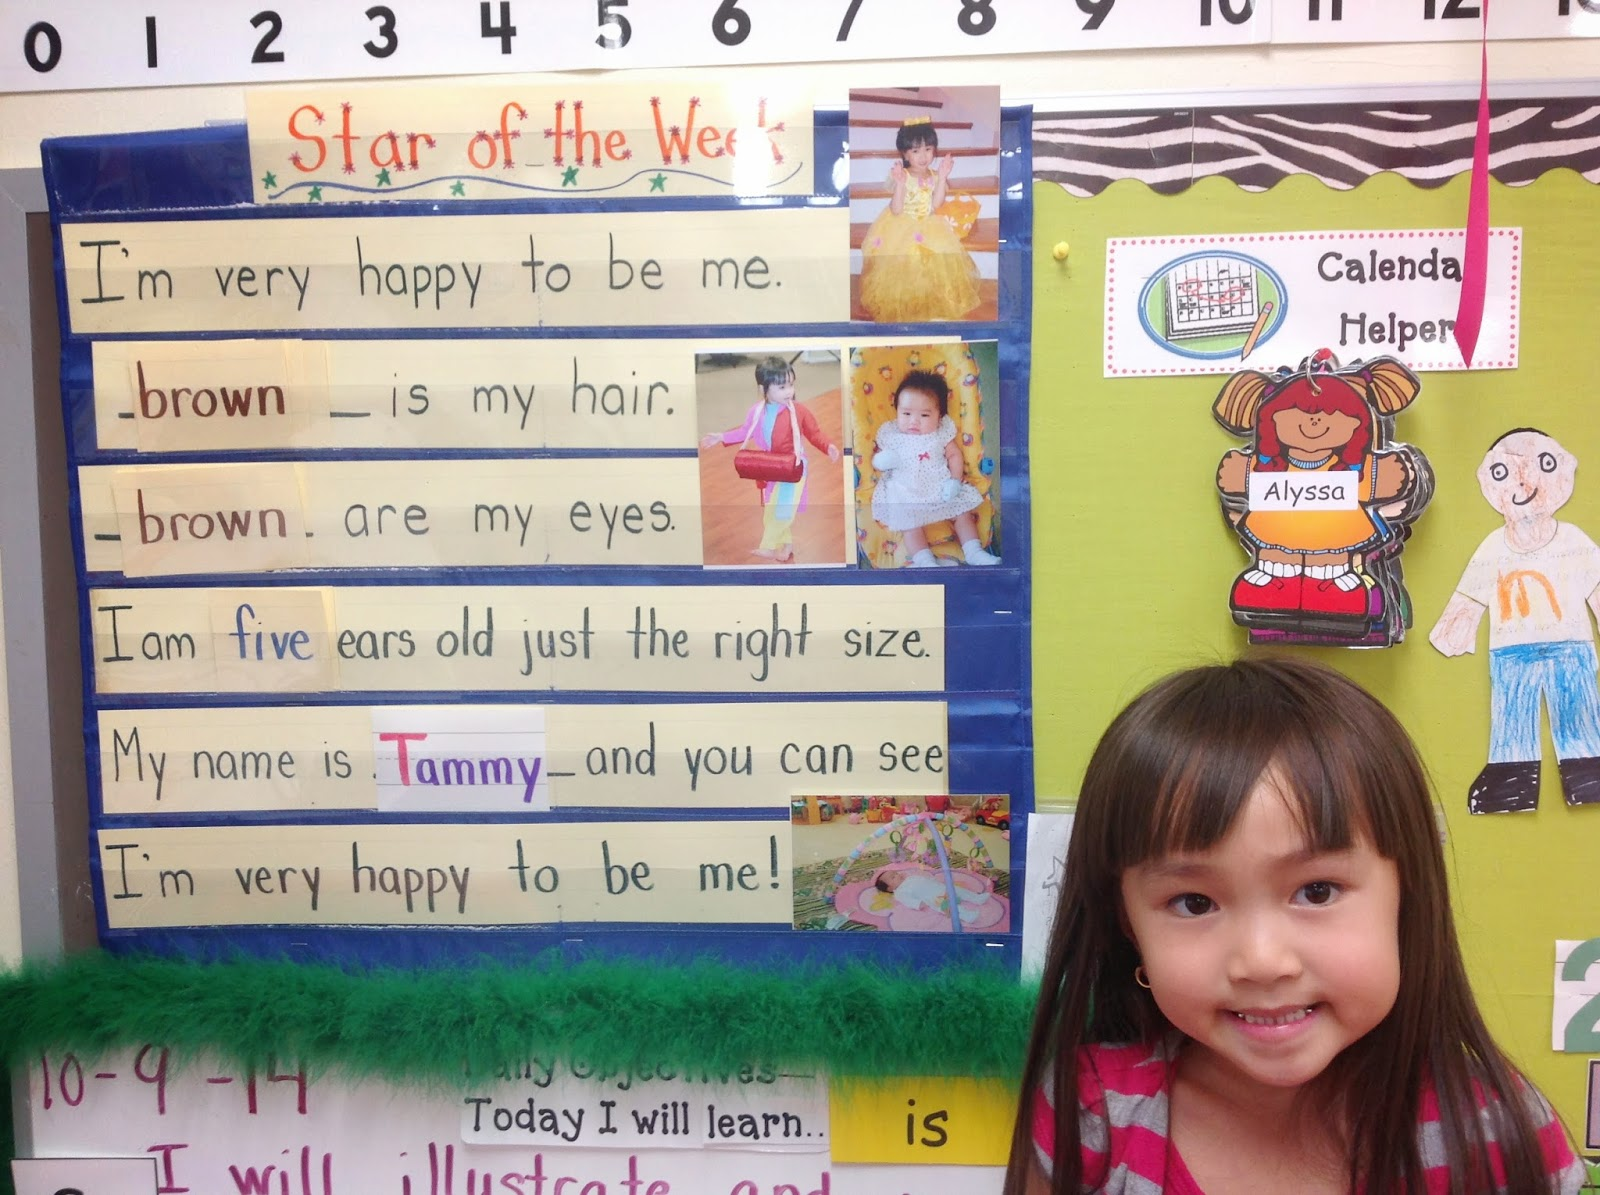 The Kindergarten Way Of Life Star Of The Week Story Re